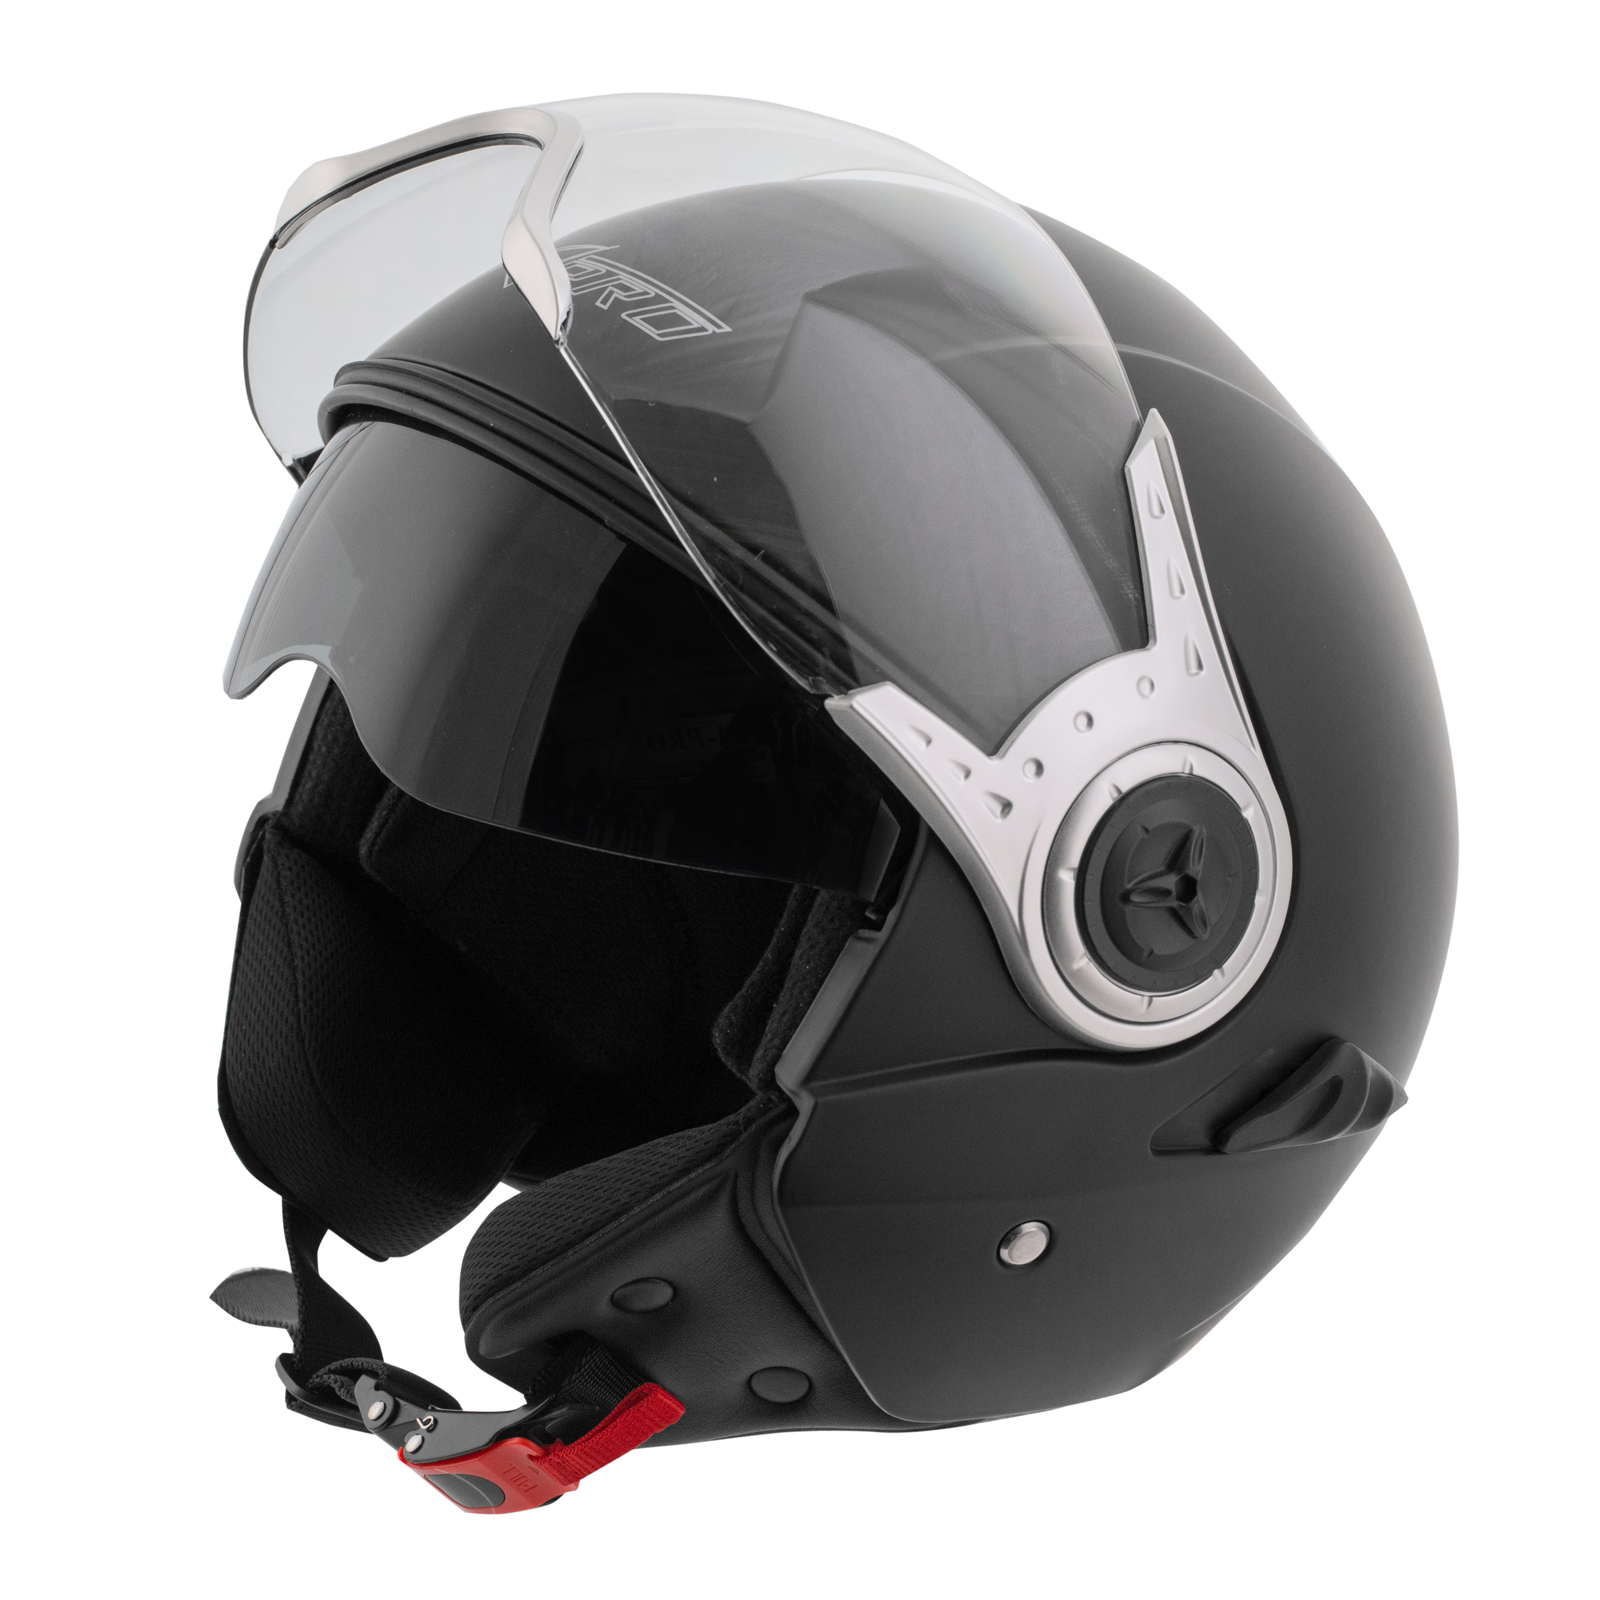 demi jet casque homologu moto scooter visi re pare soleil noir mat ebay. Black Bedroom Furniture Sets. Home Design Ideas